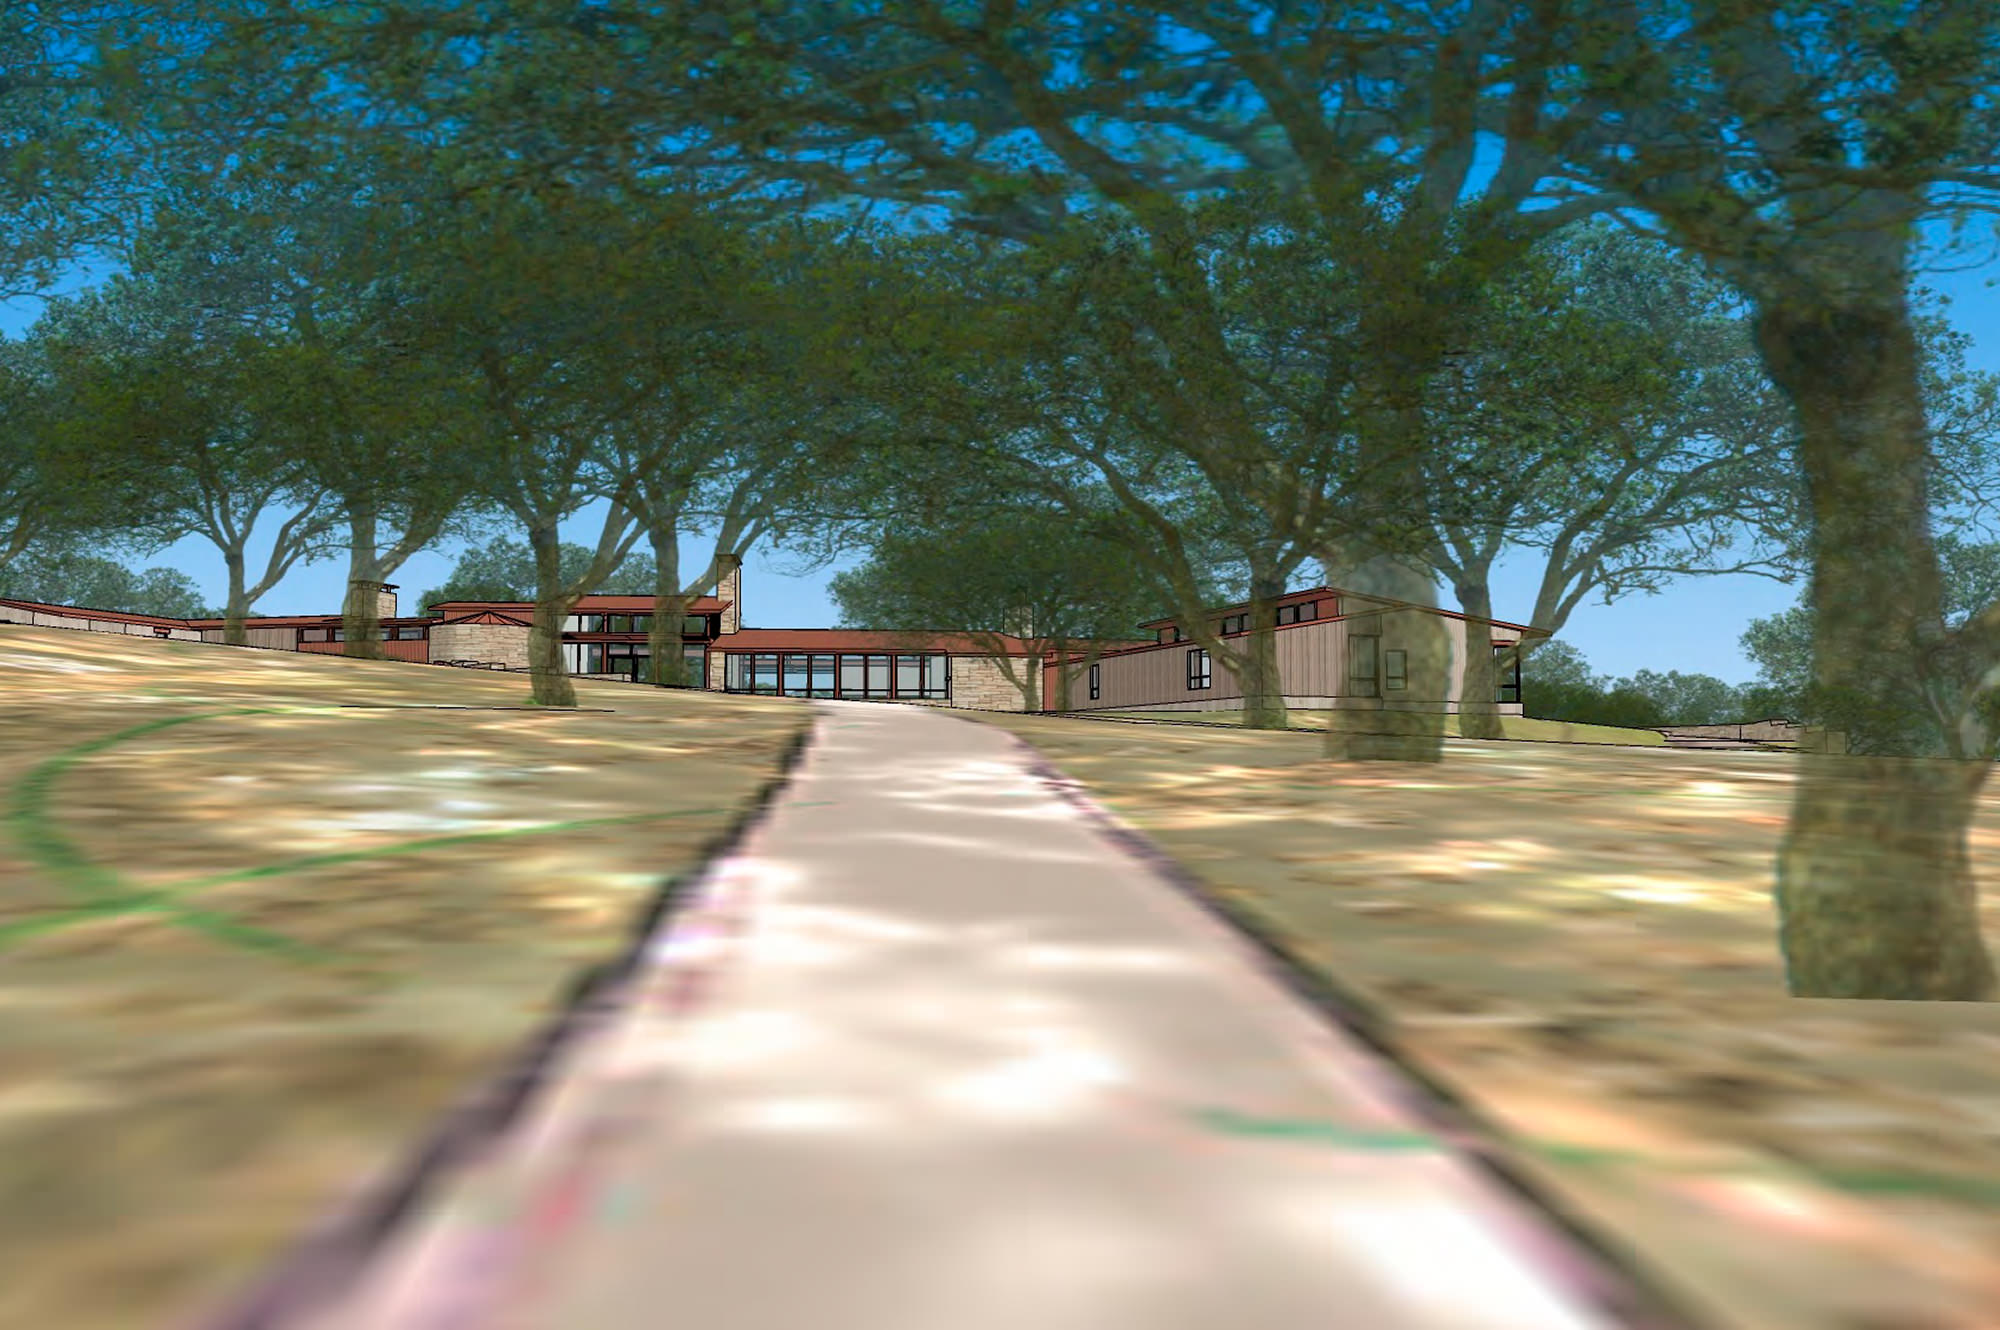 Rendering of driveway to custom home